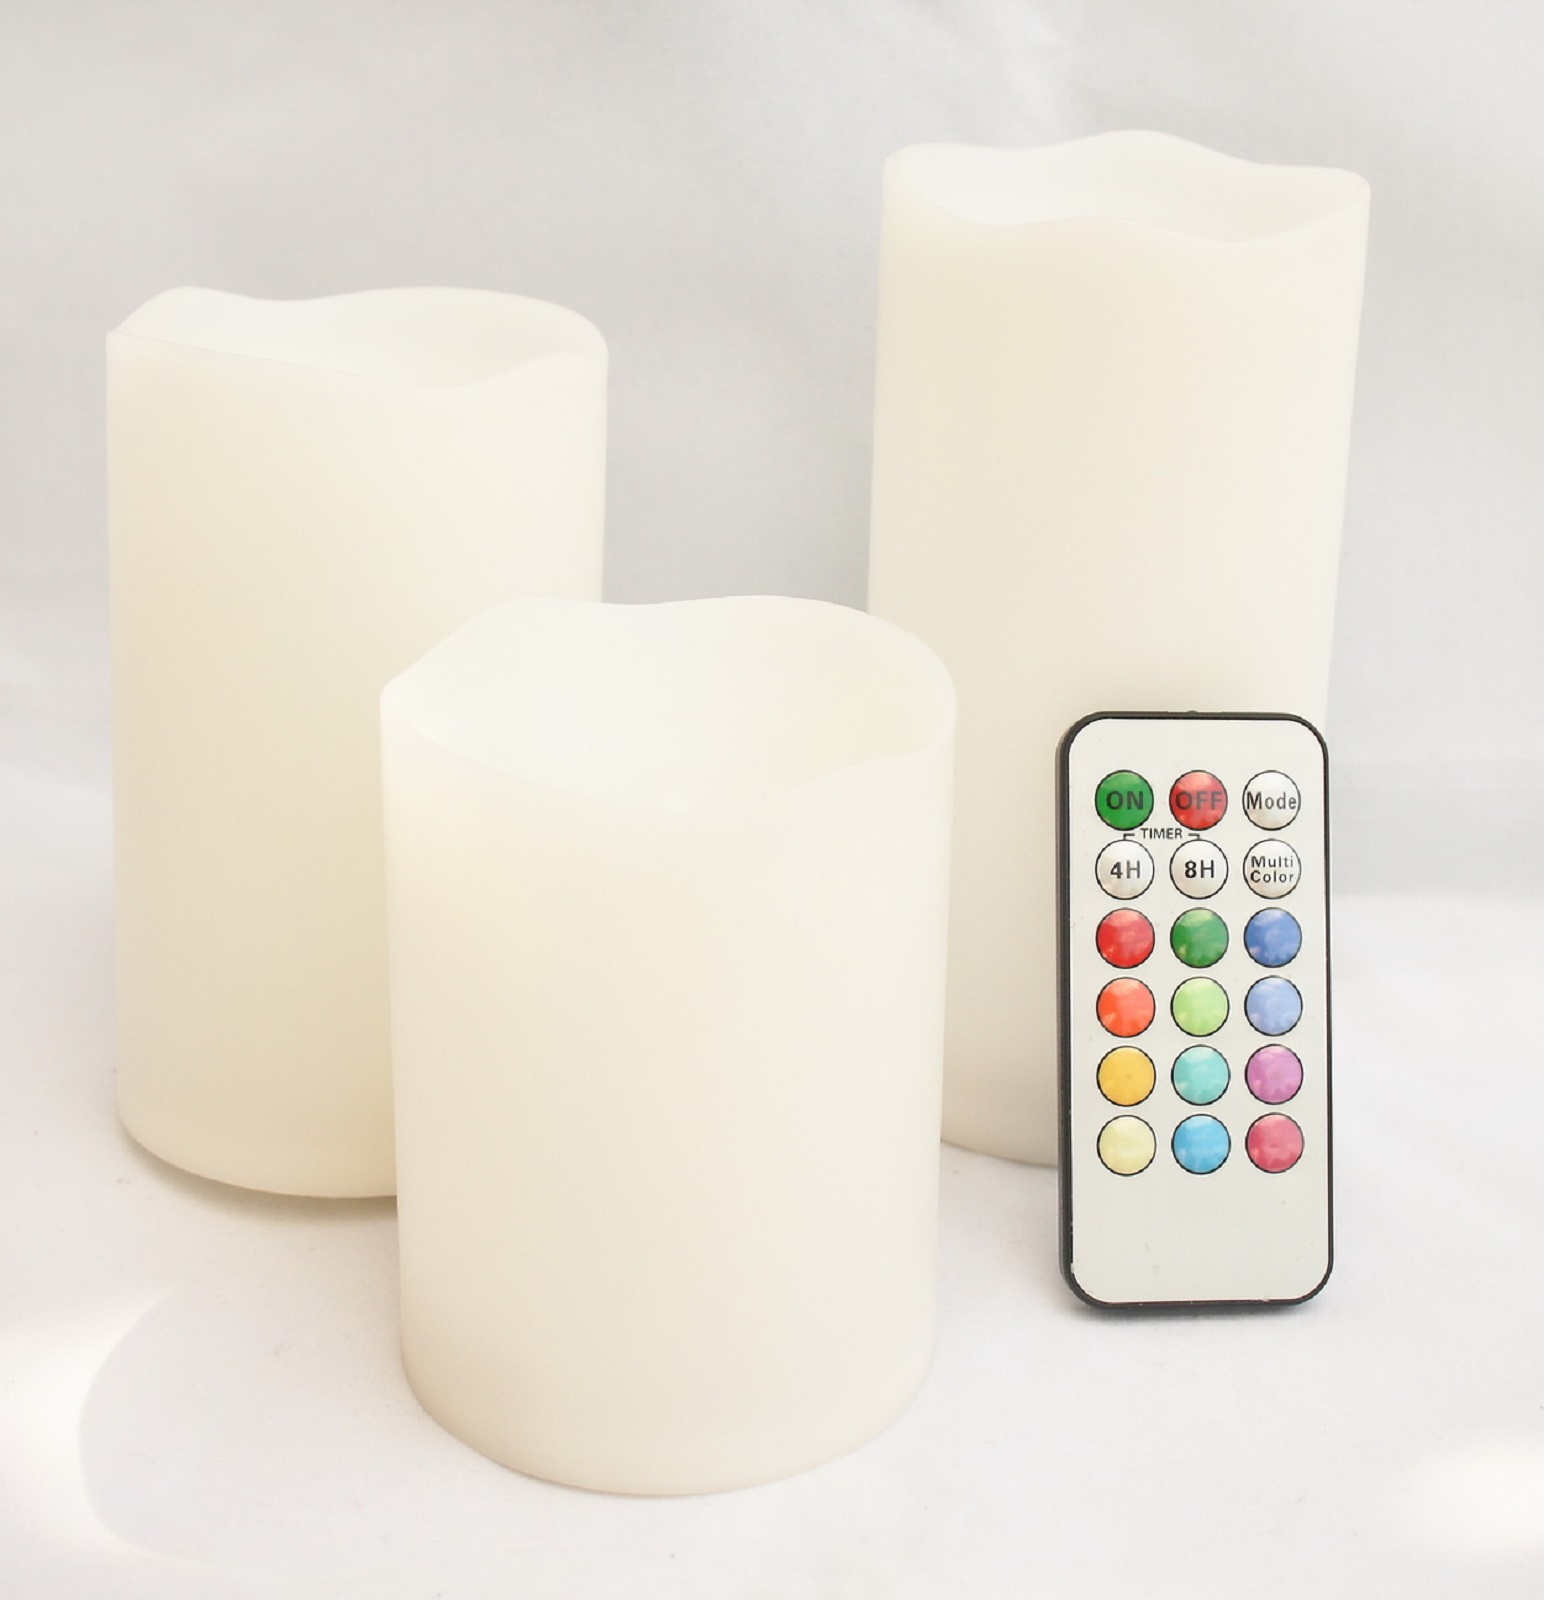 Set of 3 Round Melted Edge Remote Controlled Multi Color Changing Flameless Pillar Candles